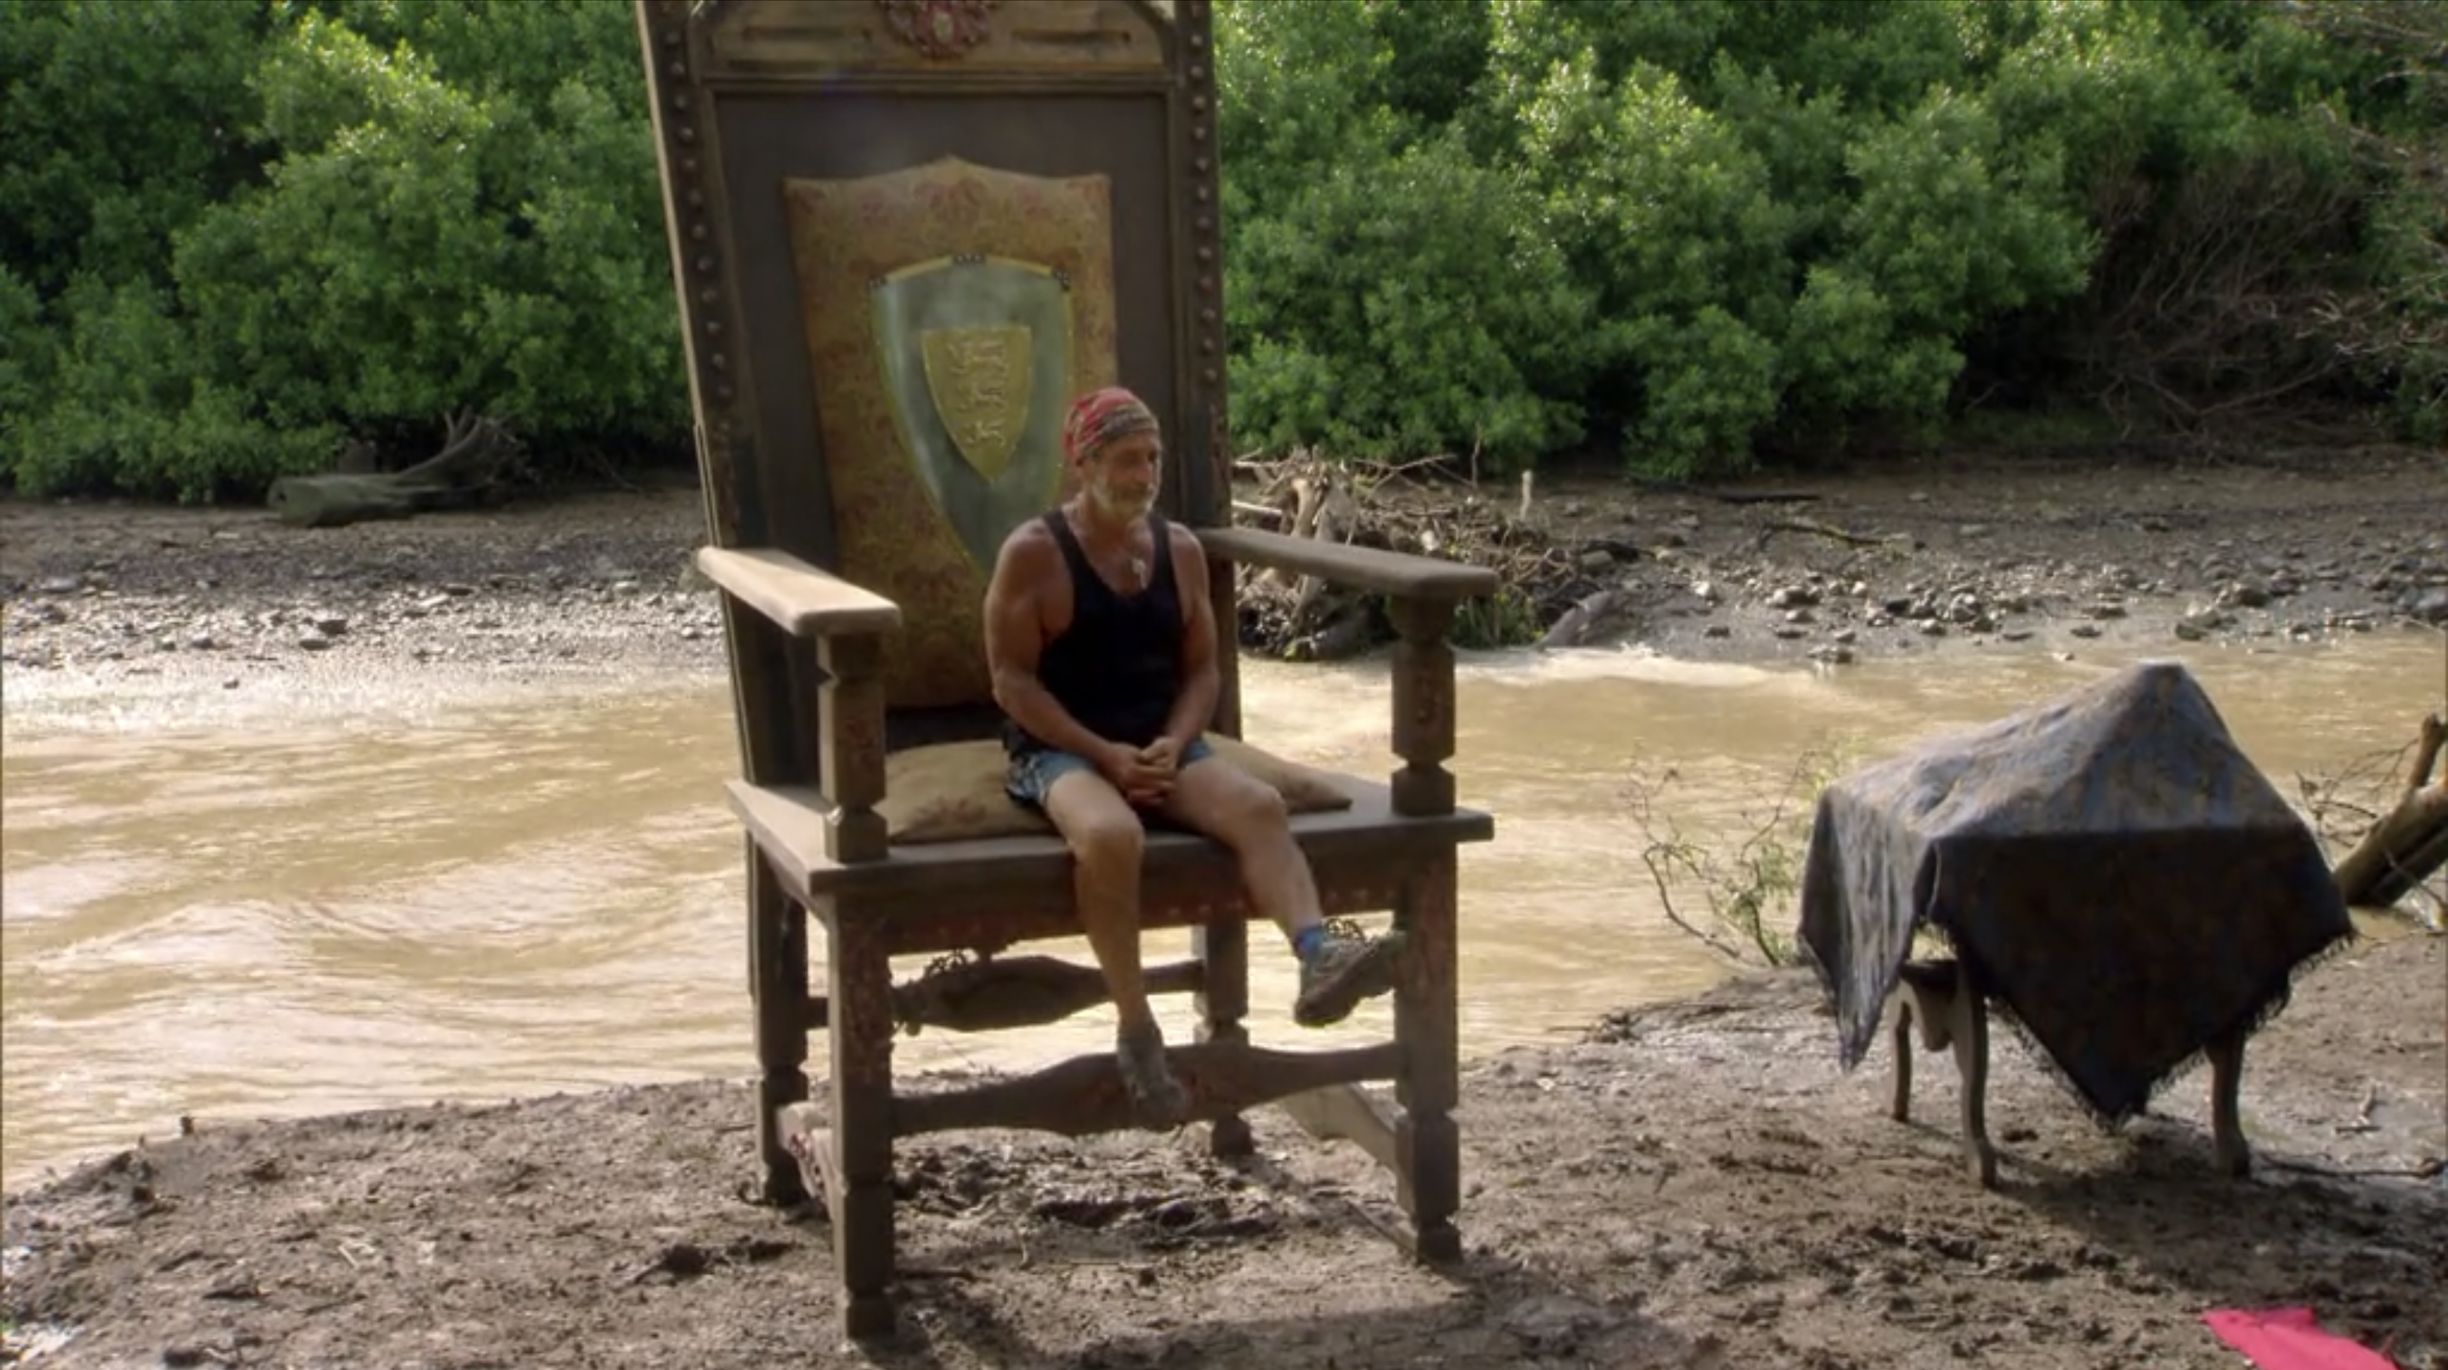 Dan Lembo sits in a large chair during a Gulliver's Travels themed challenge